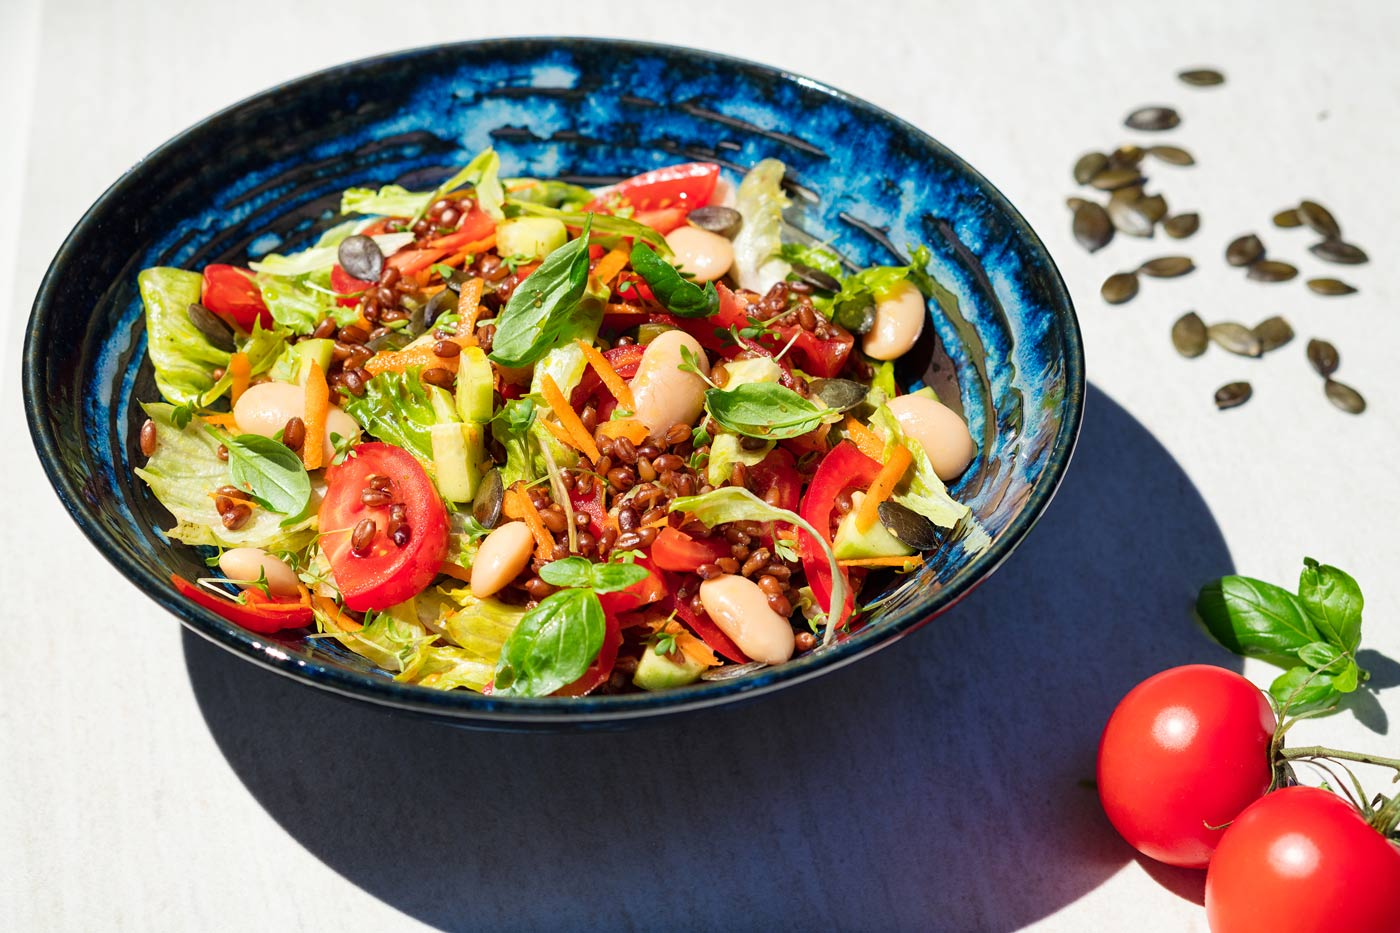 Recipe image of salad with tomatos and beans